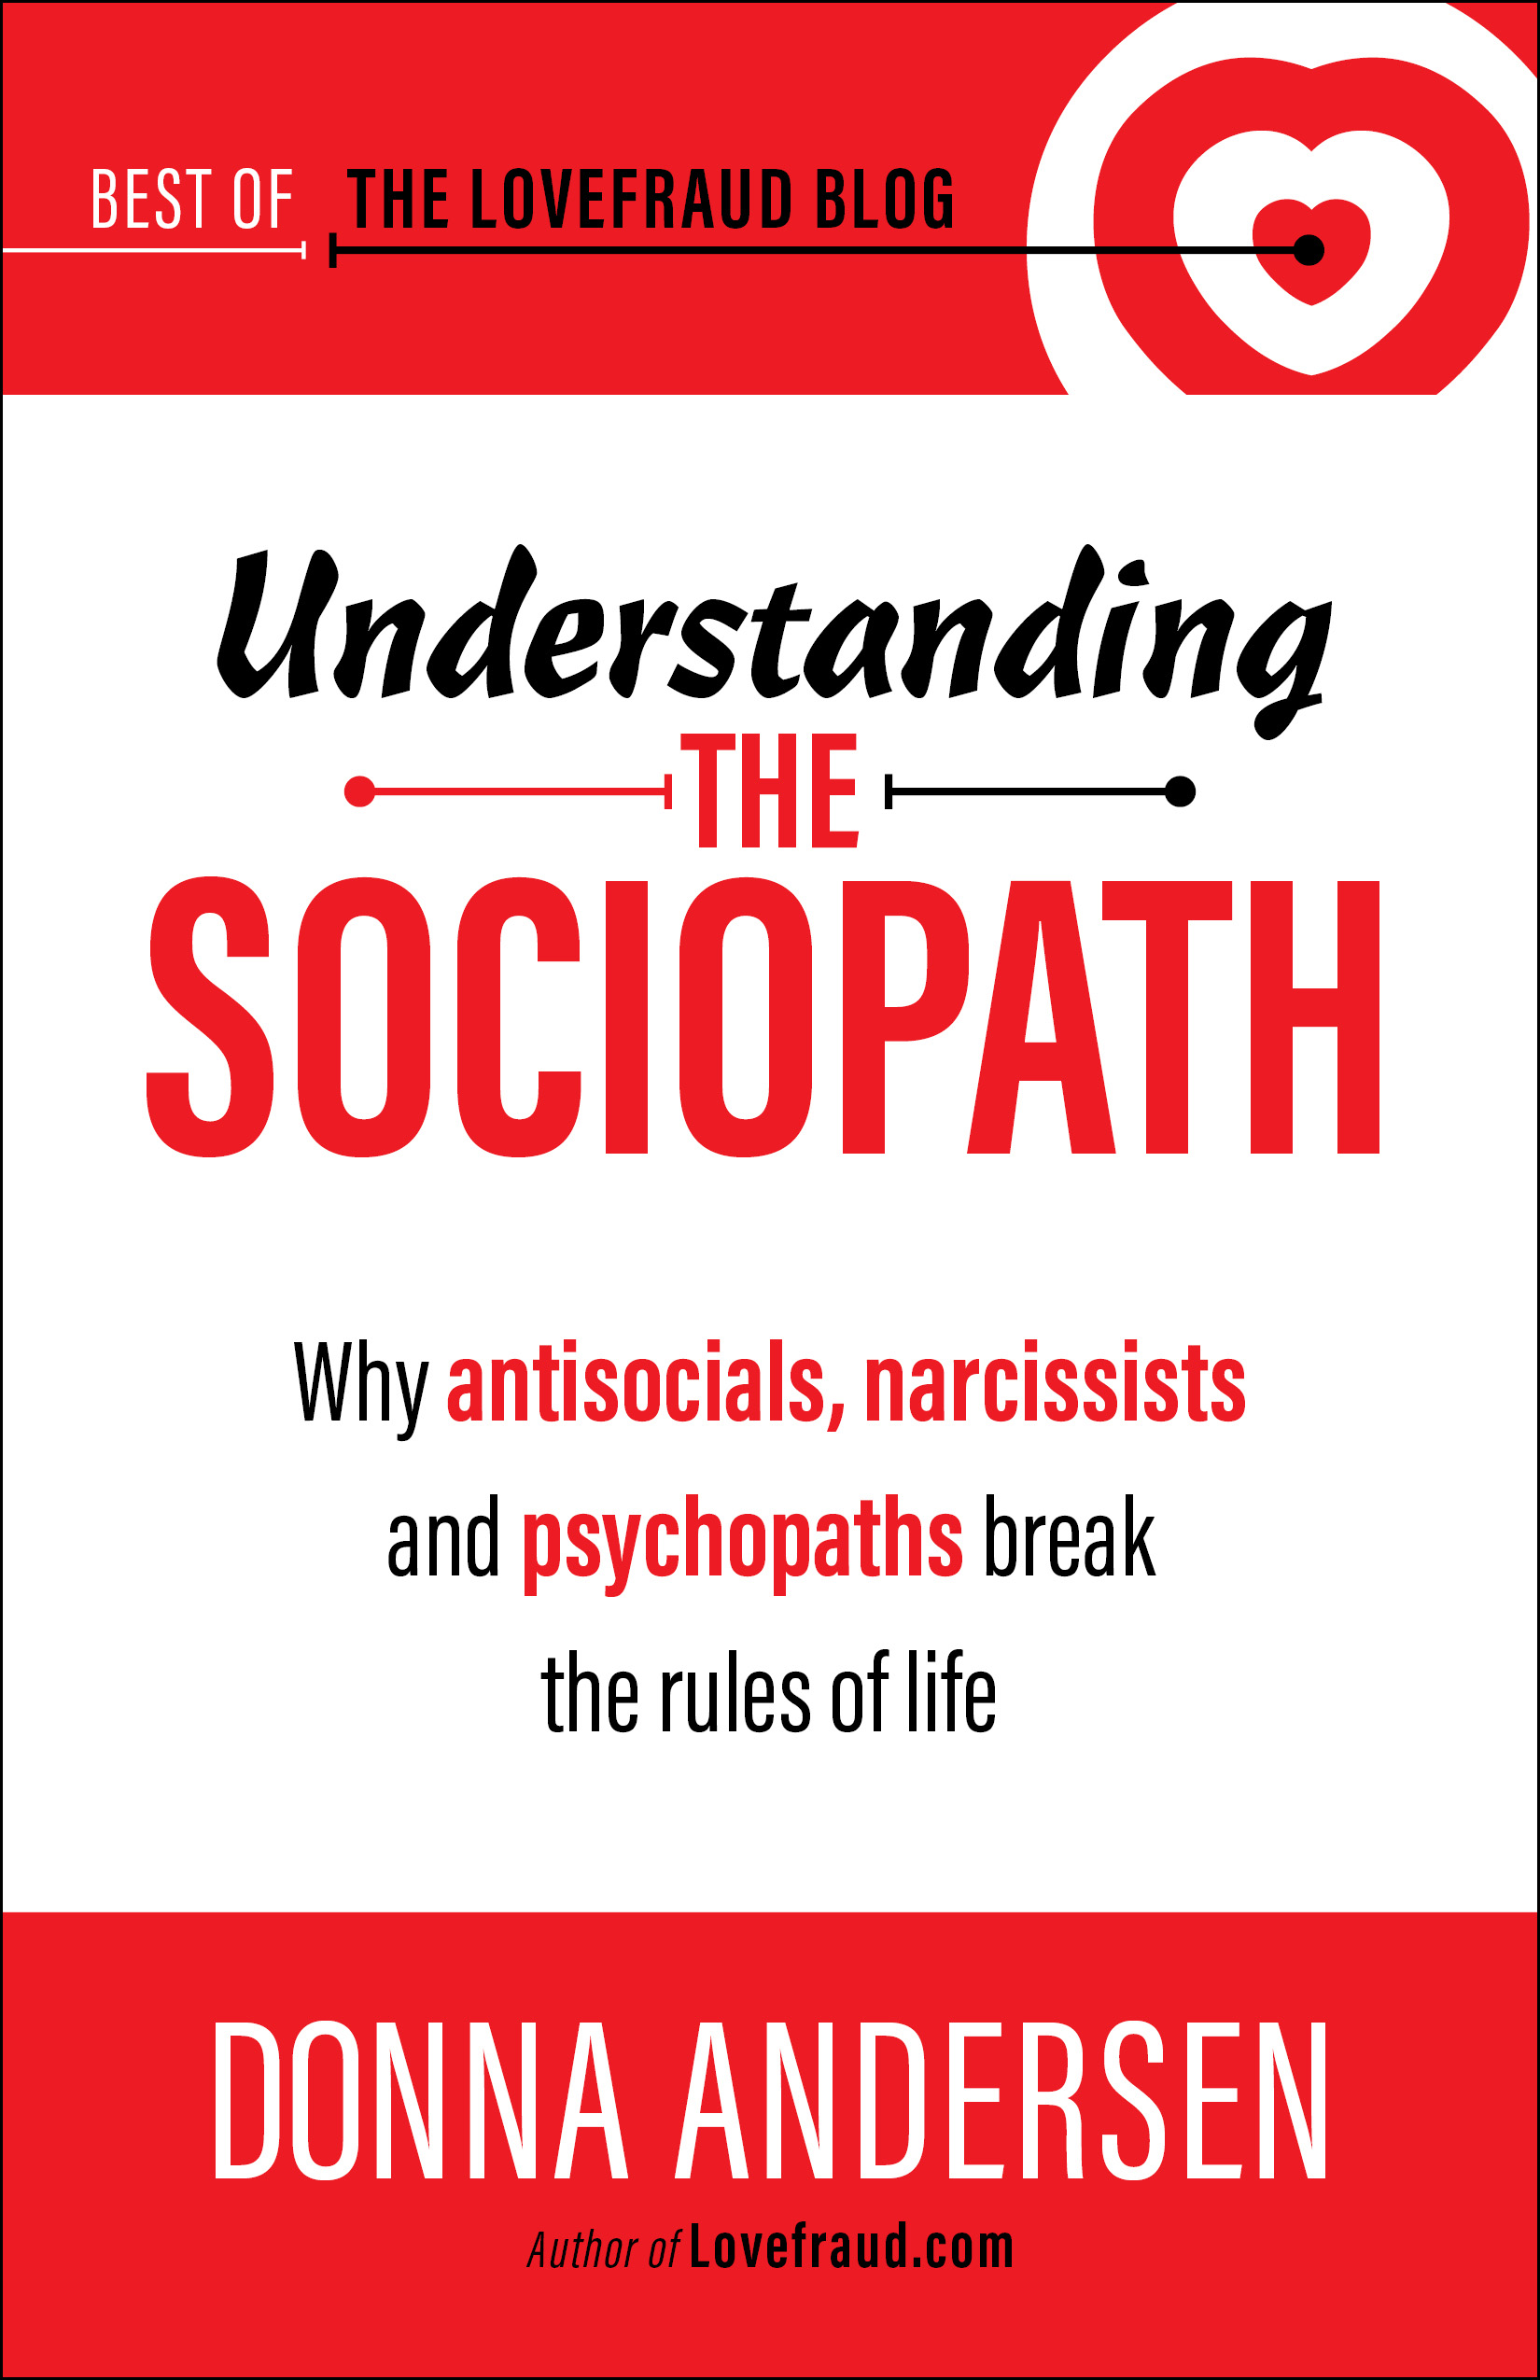 Understanding the Sociopath: Why antisocials, narcissists and psychopaths  break the rules of life, an Ebook by Donna Andersen